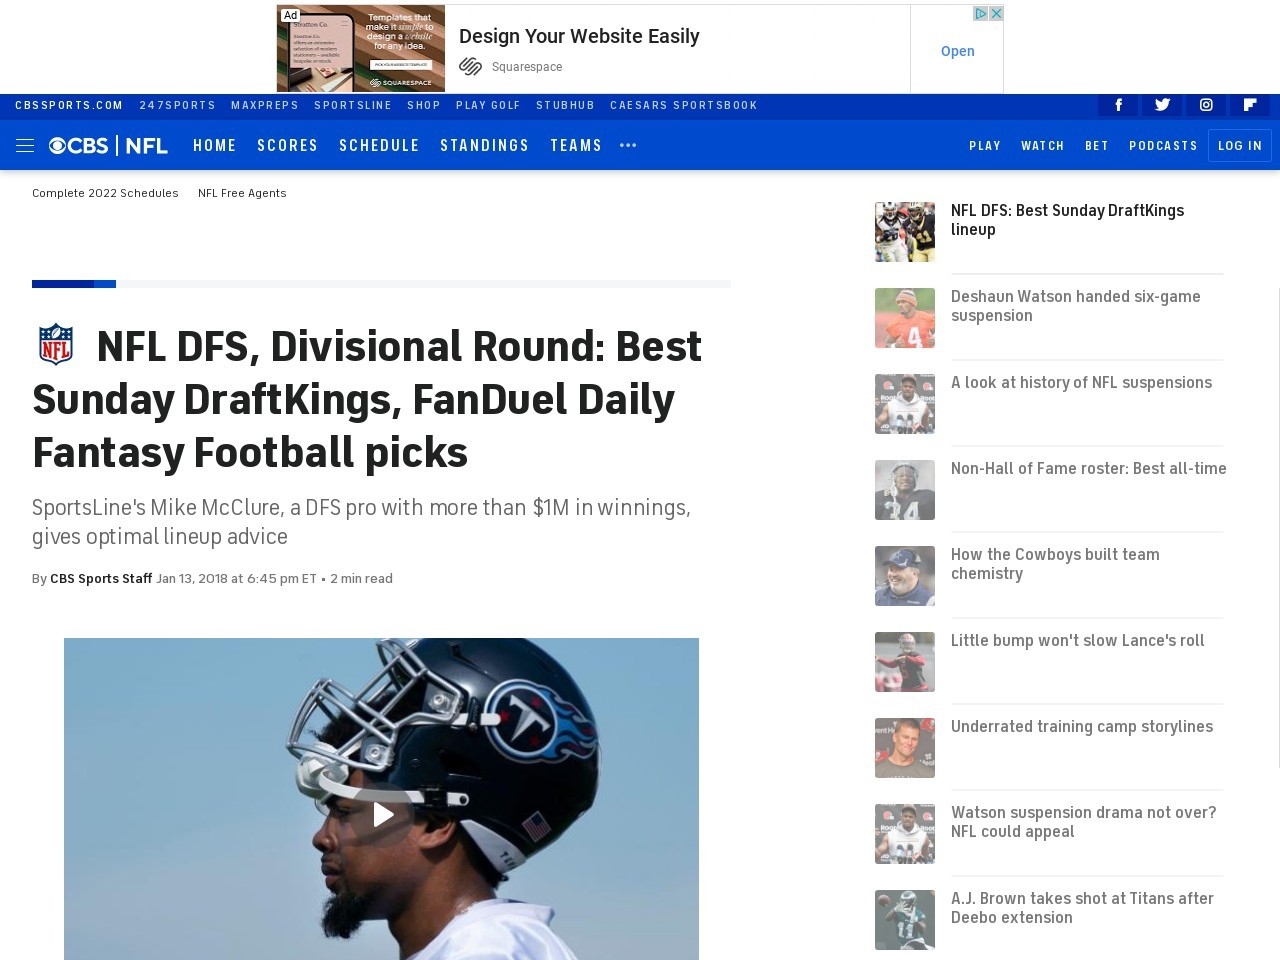 NFL DFS, Divisional Round: Best Sunday DraftKings, FanDuel Daily Fantasy Football picks